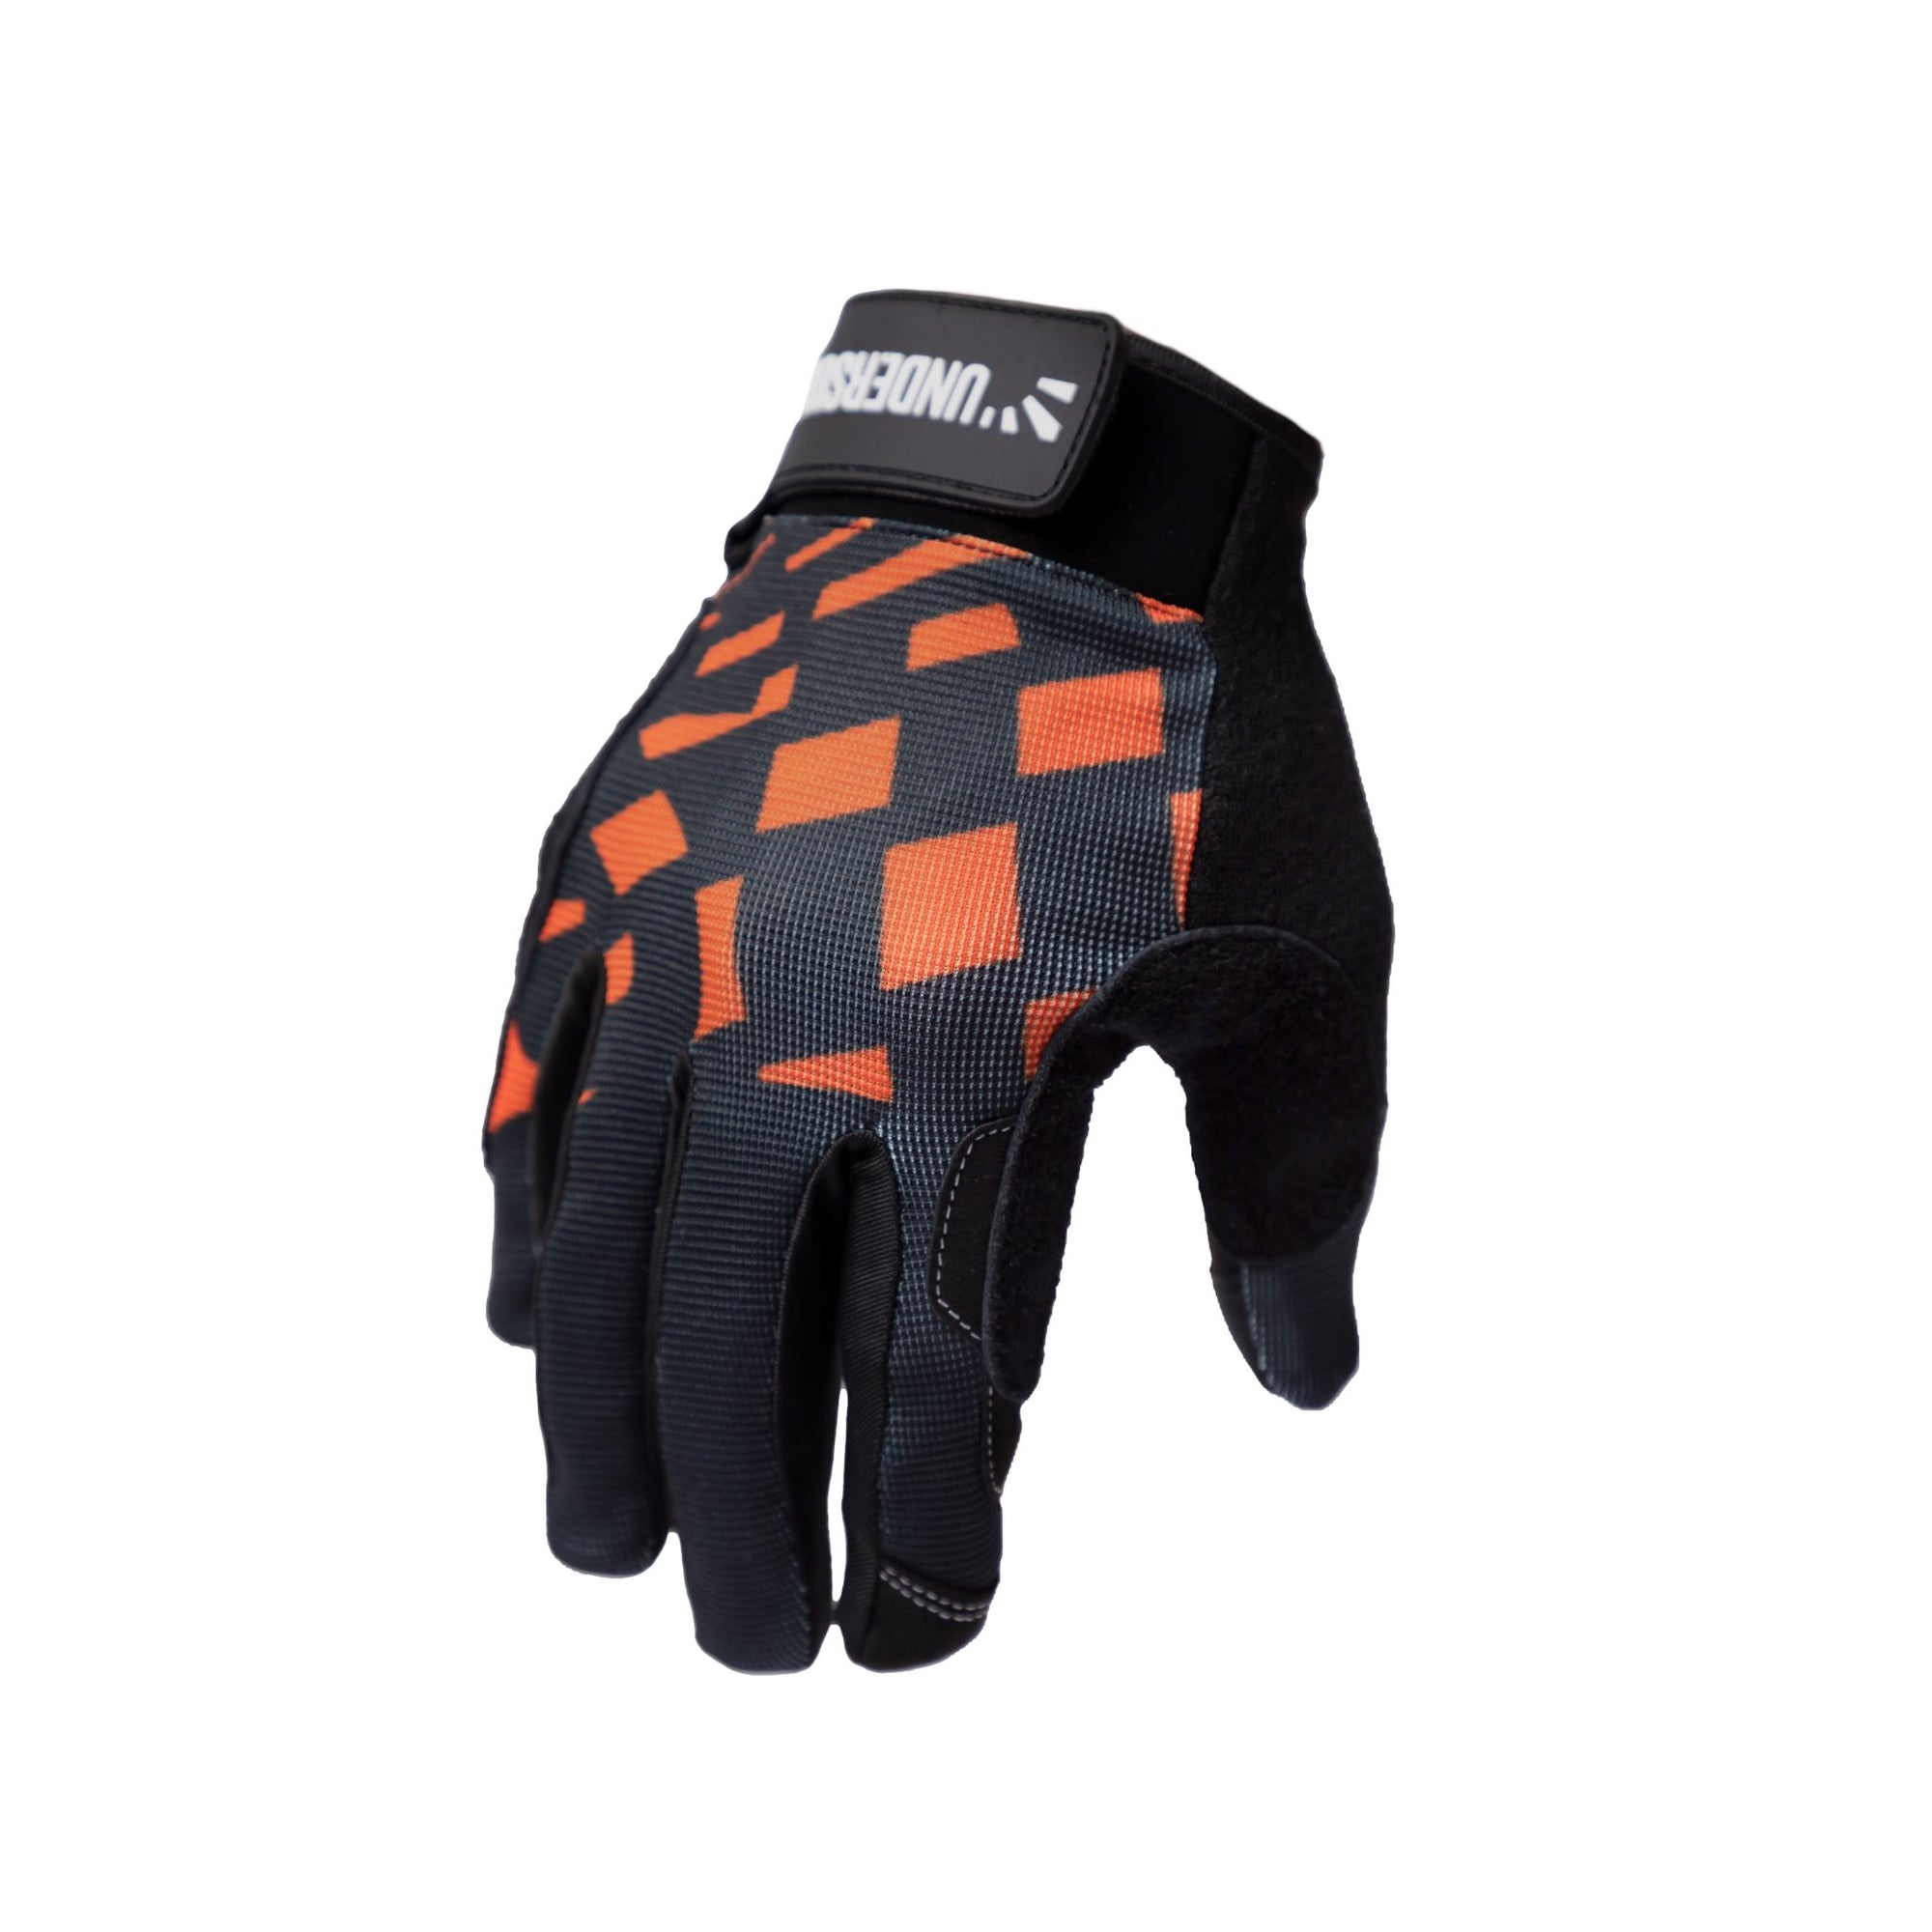 Undersun Workout Gloves - X-Large / Orange - Undersun Fitness